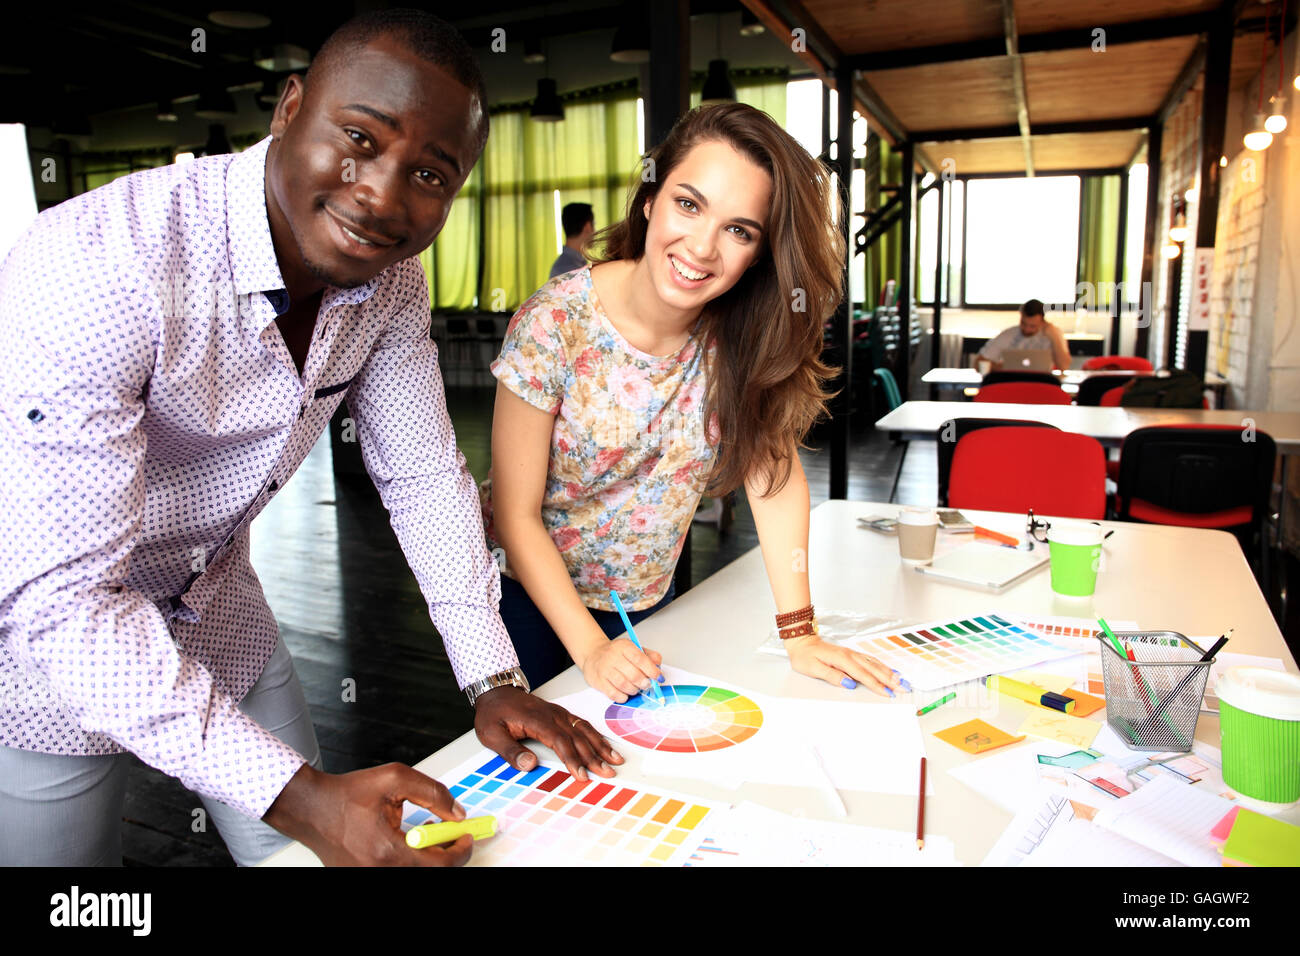 Group of Multiethnic Designers Brainstorming - Stock Image